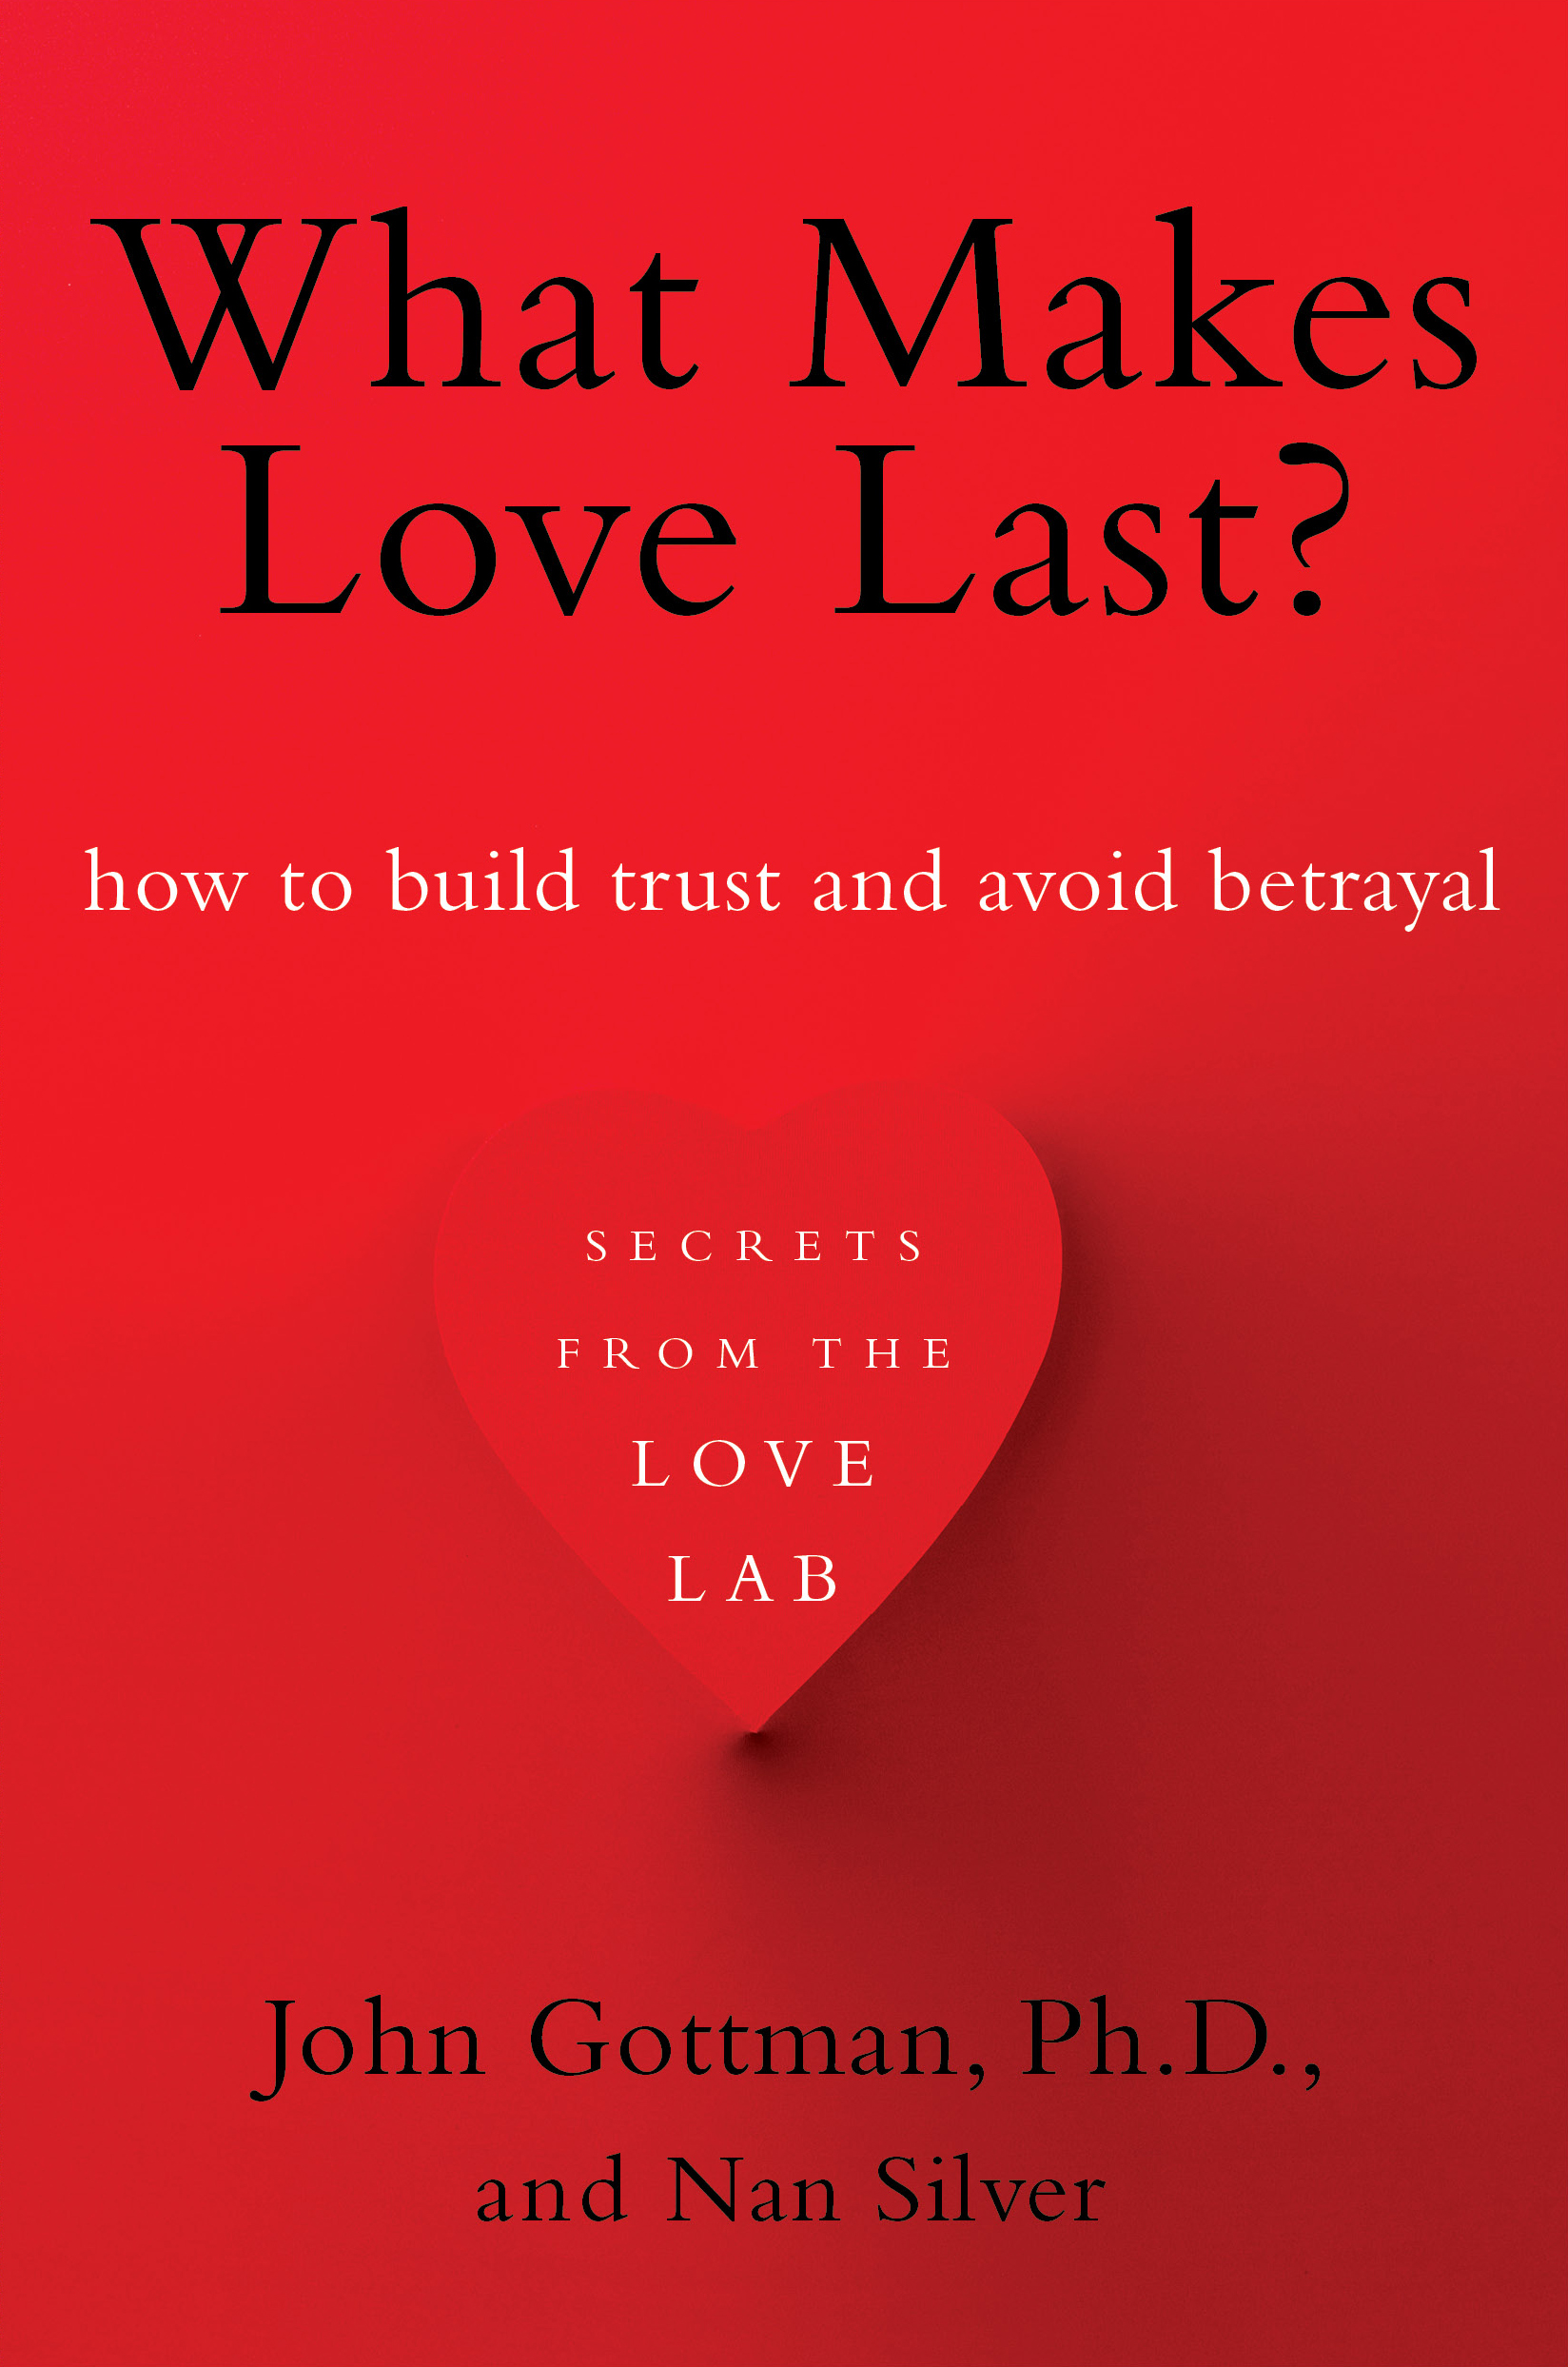 What Makes Love Last